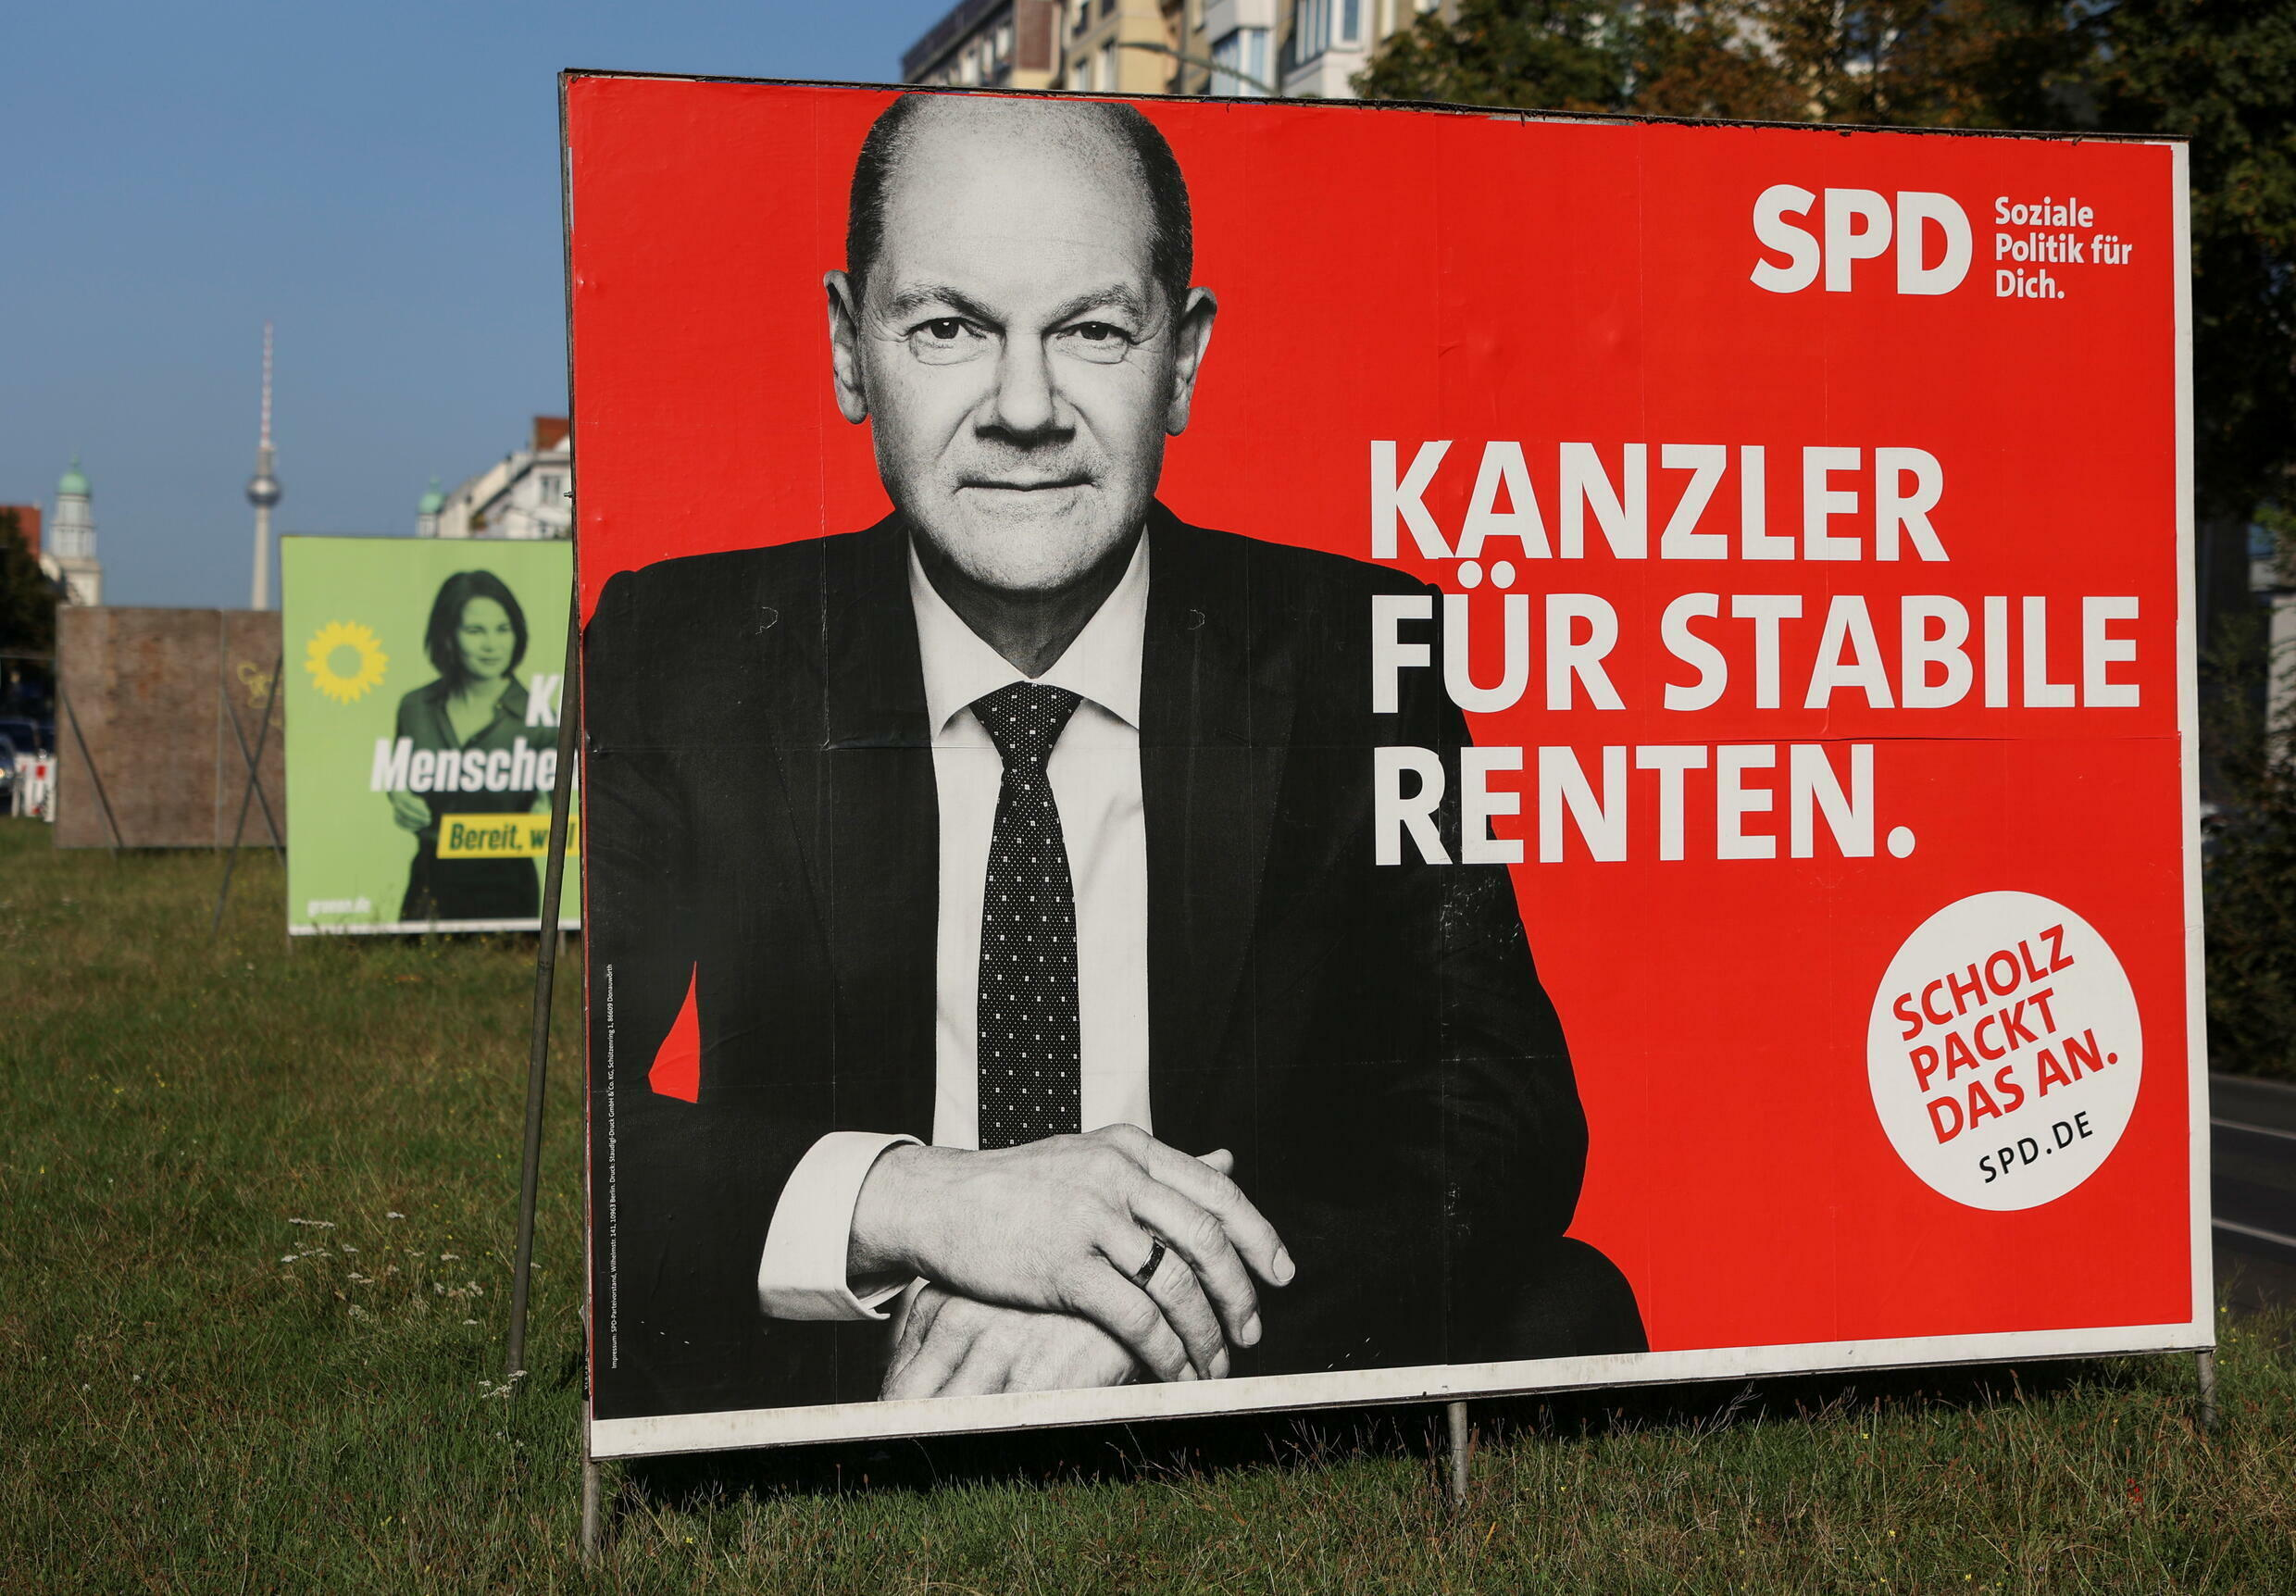 2021-09-14T153528Z_112244679_RC2JPP97IMYM_RTRMADP_3_GERMANY-ELECTION-ELECTION-POSTER